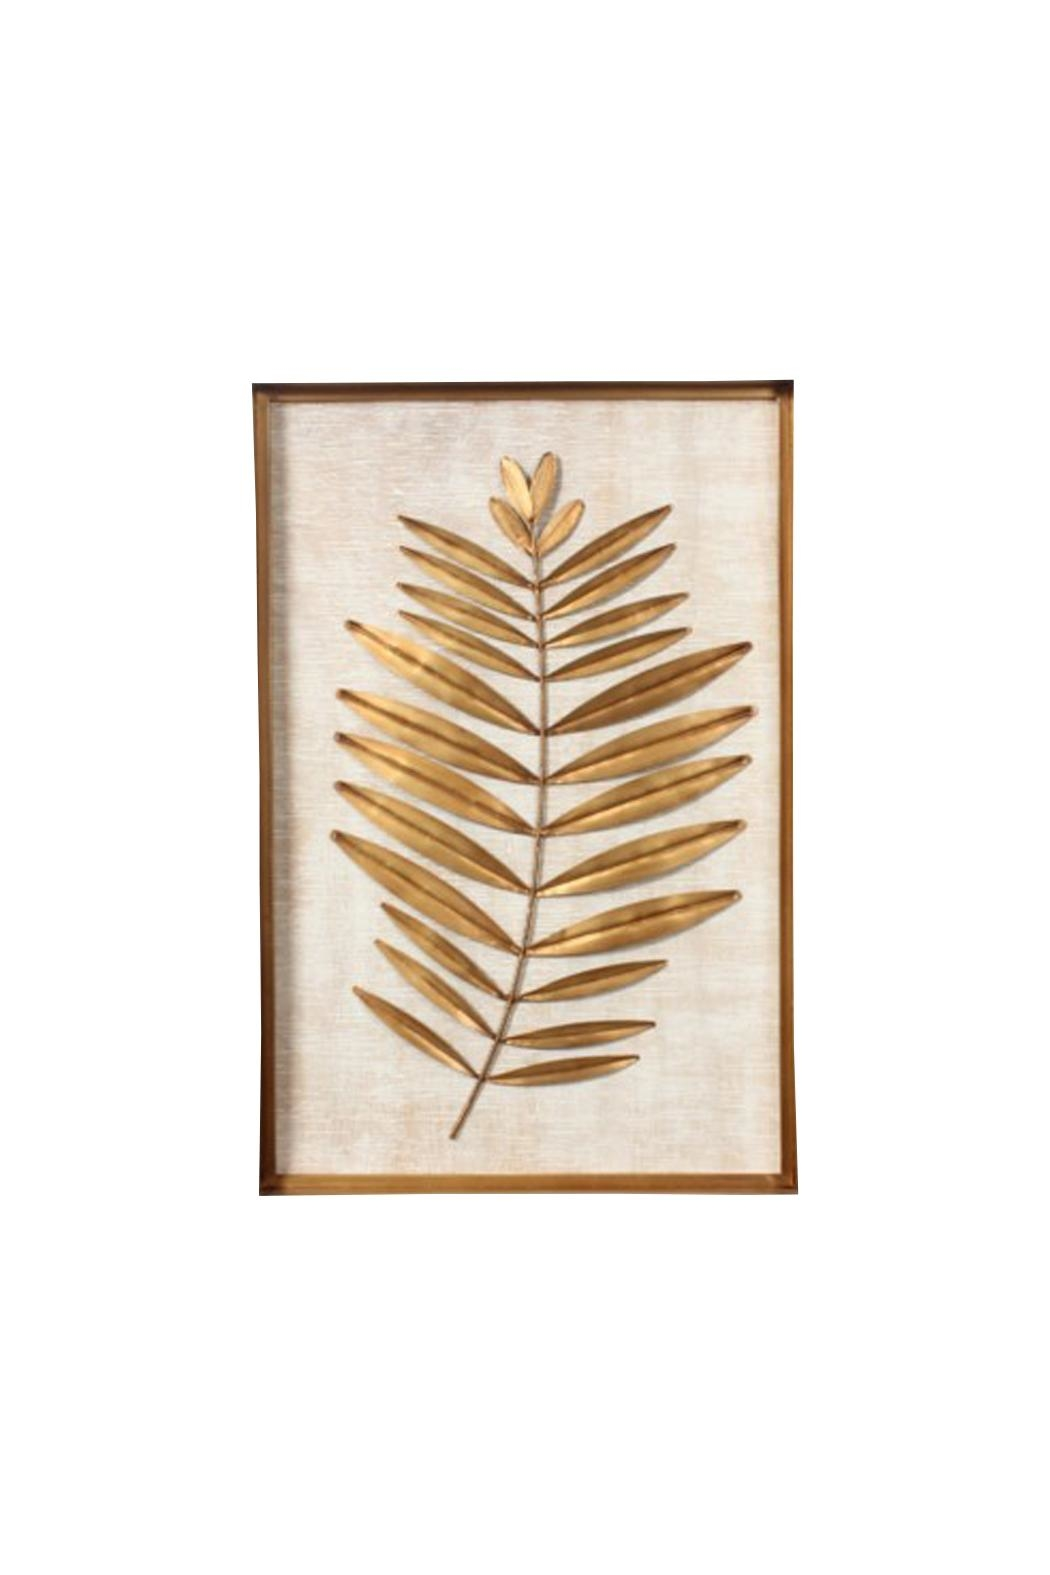 C J Marketing Ltd Gold Leaf Frame From Canada By Mountain Home